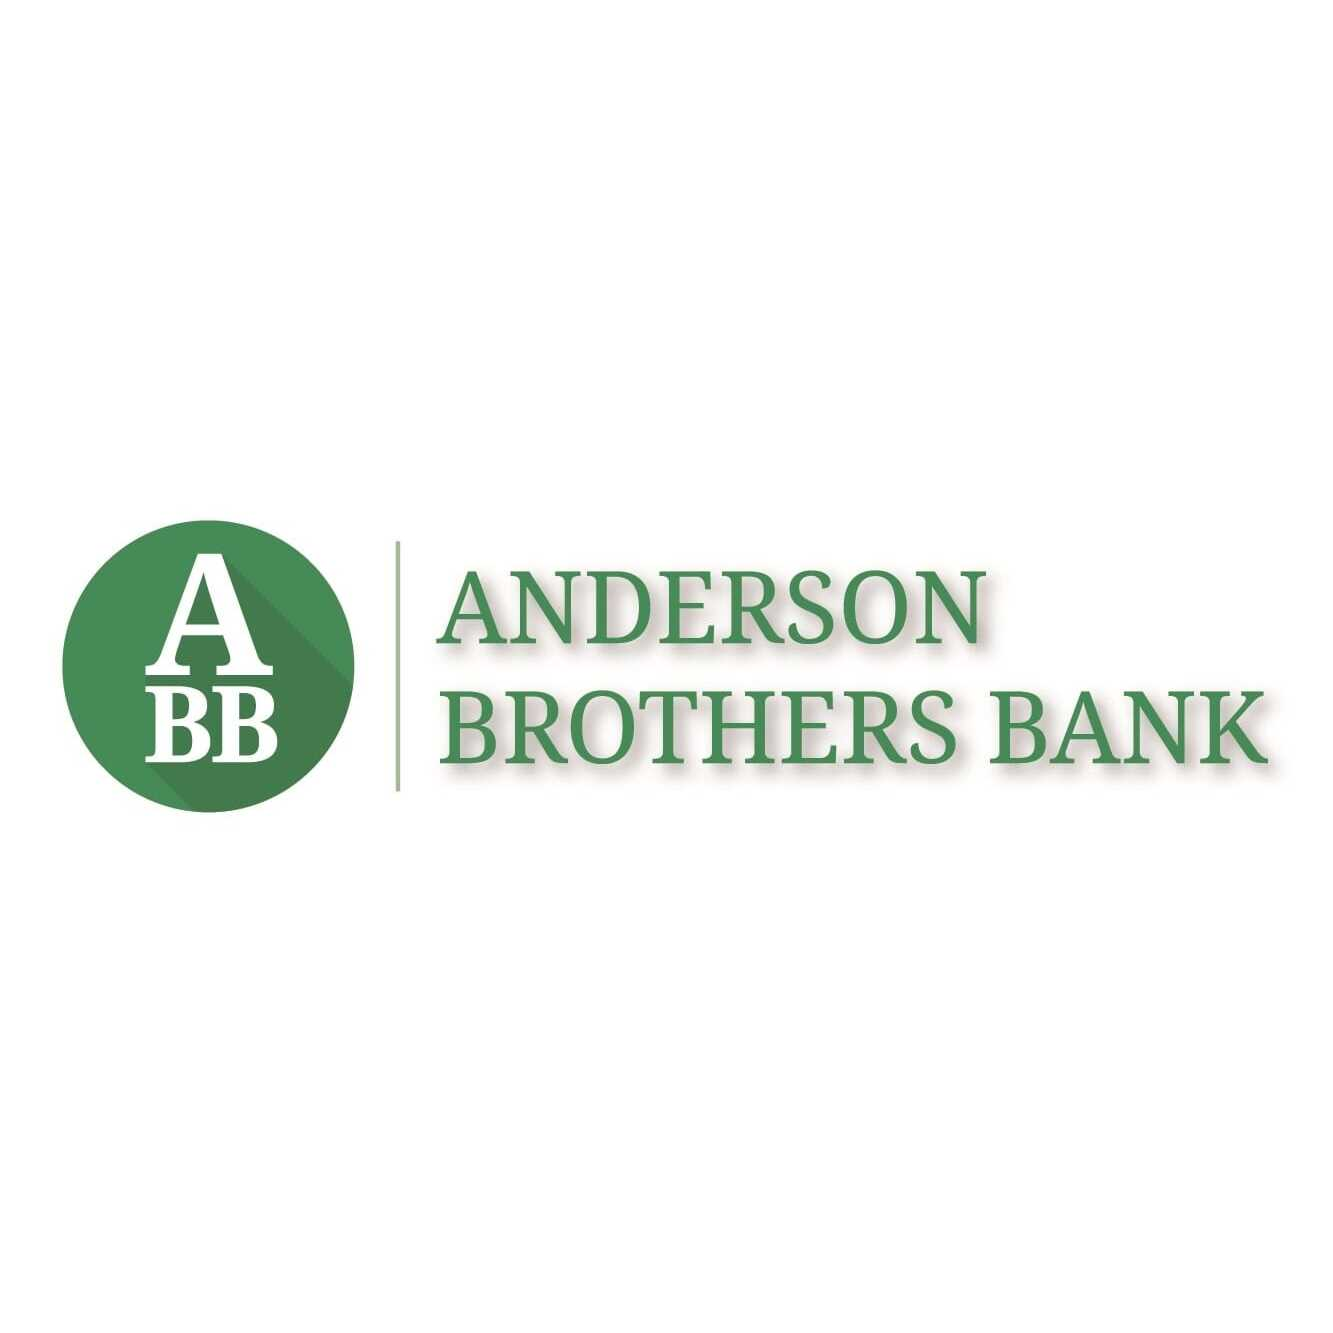 Anderson Brothers Bank image 1